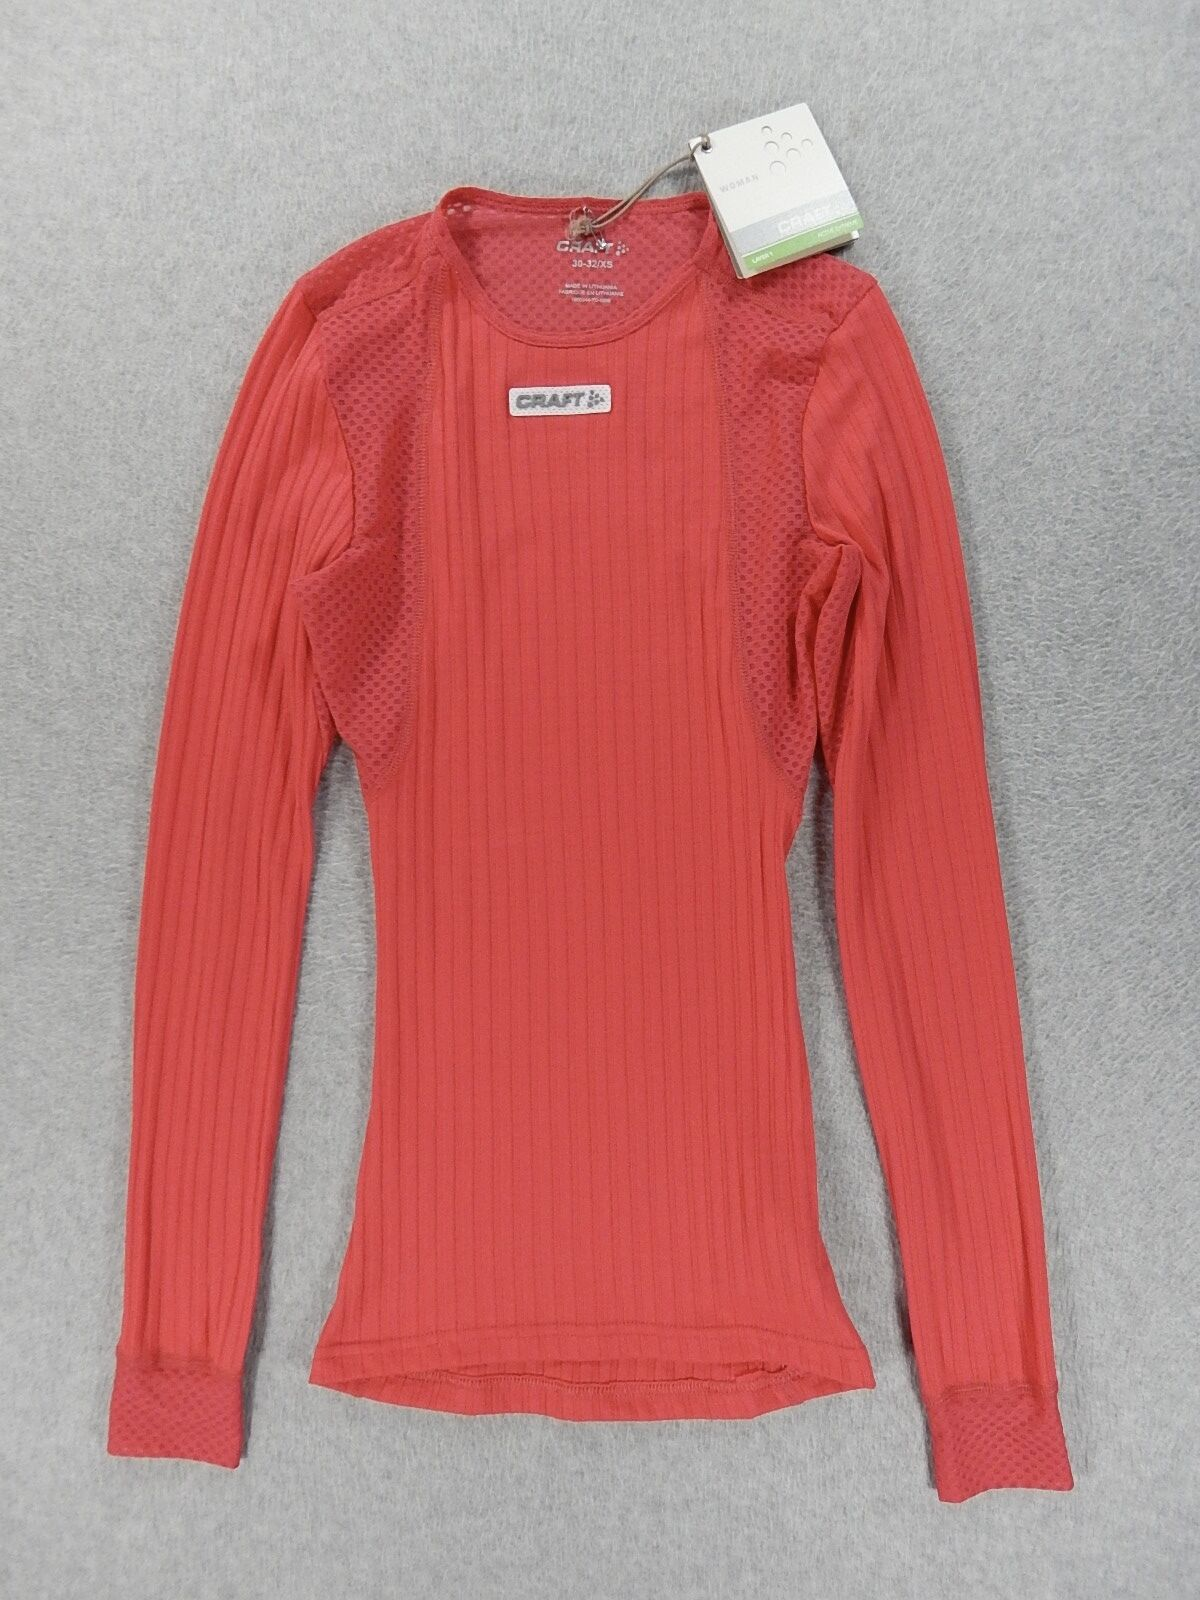 NWT Craft Active Extreme Concept Long Sleeve Base Layer (Womens XS) Pink